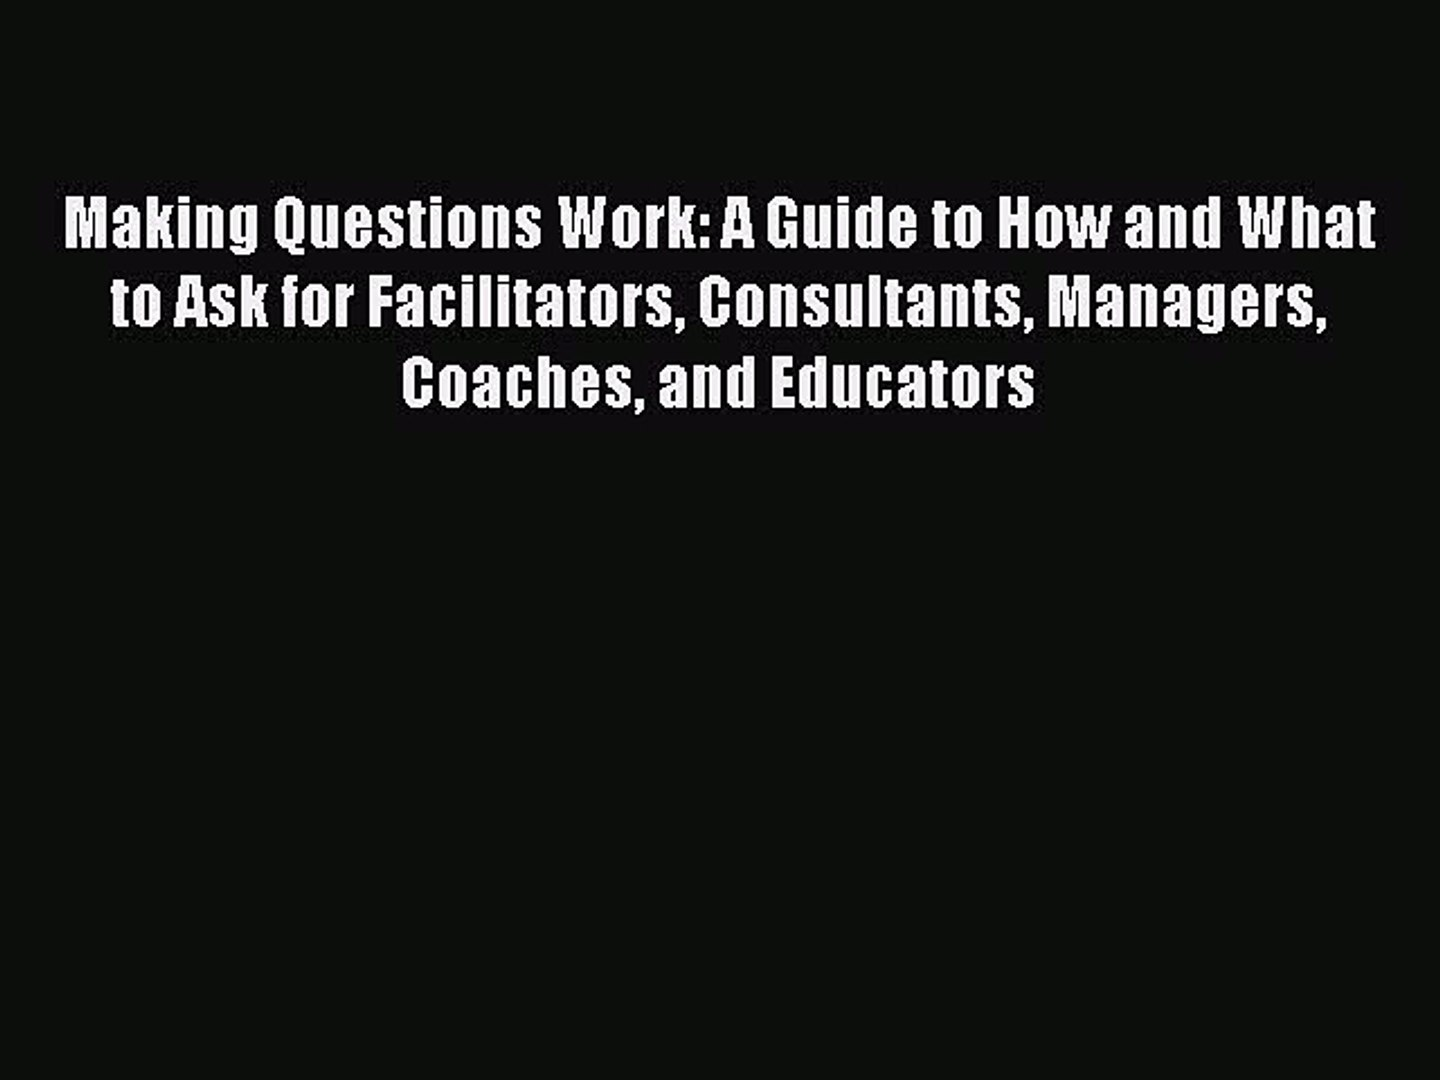 [Read book] Making Questions Work: A Guide to How and What to Ask for Facilitators Consultants